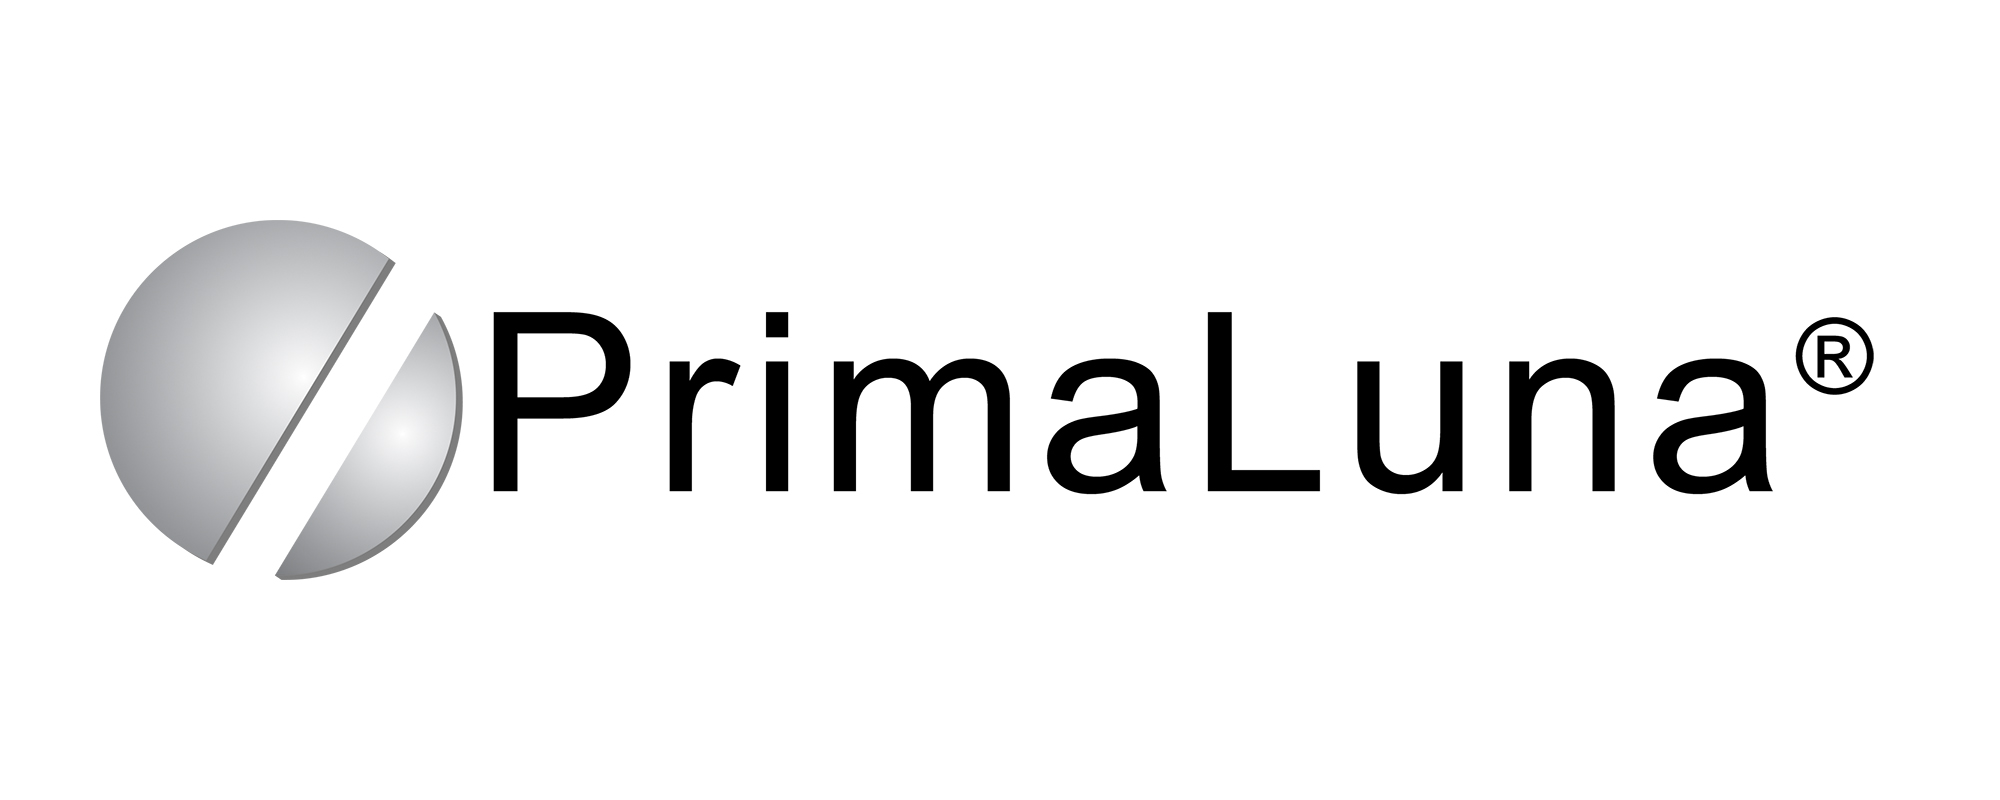 PrimaLuna Banner 1 - Norman Audio